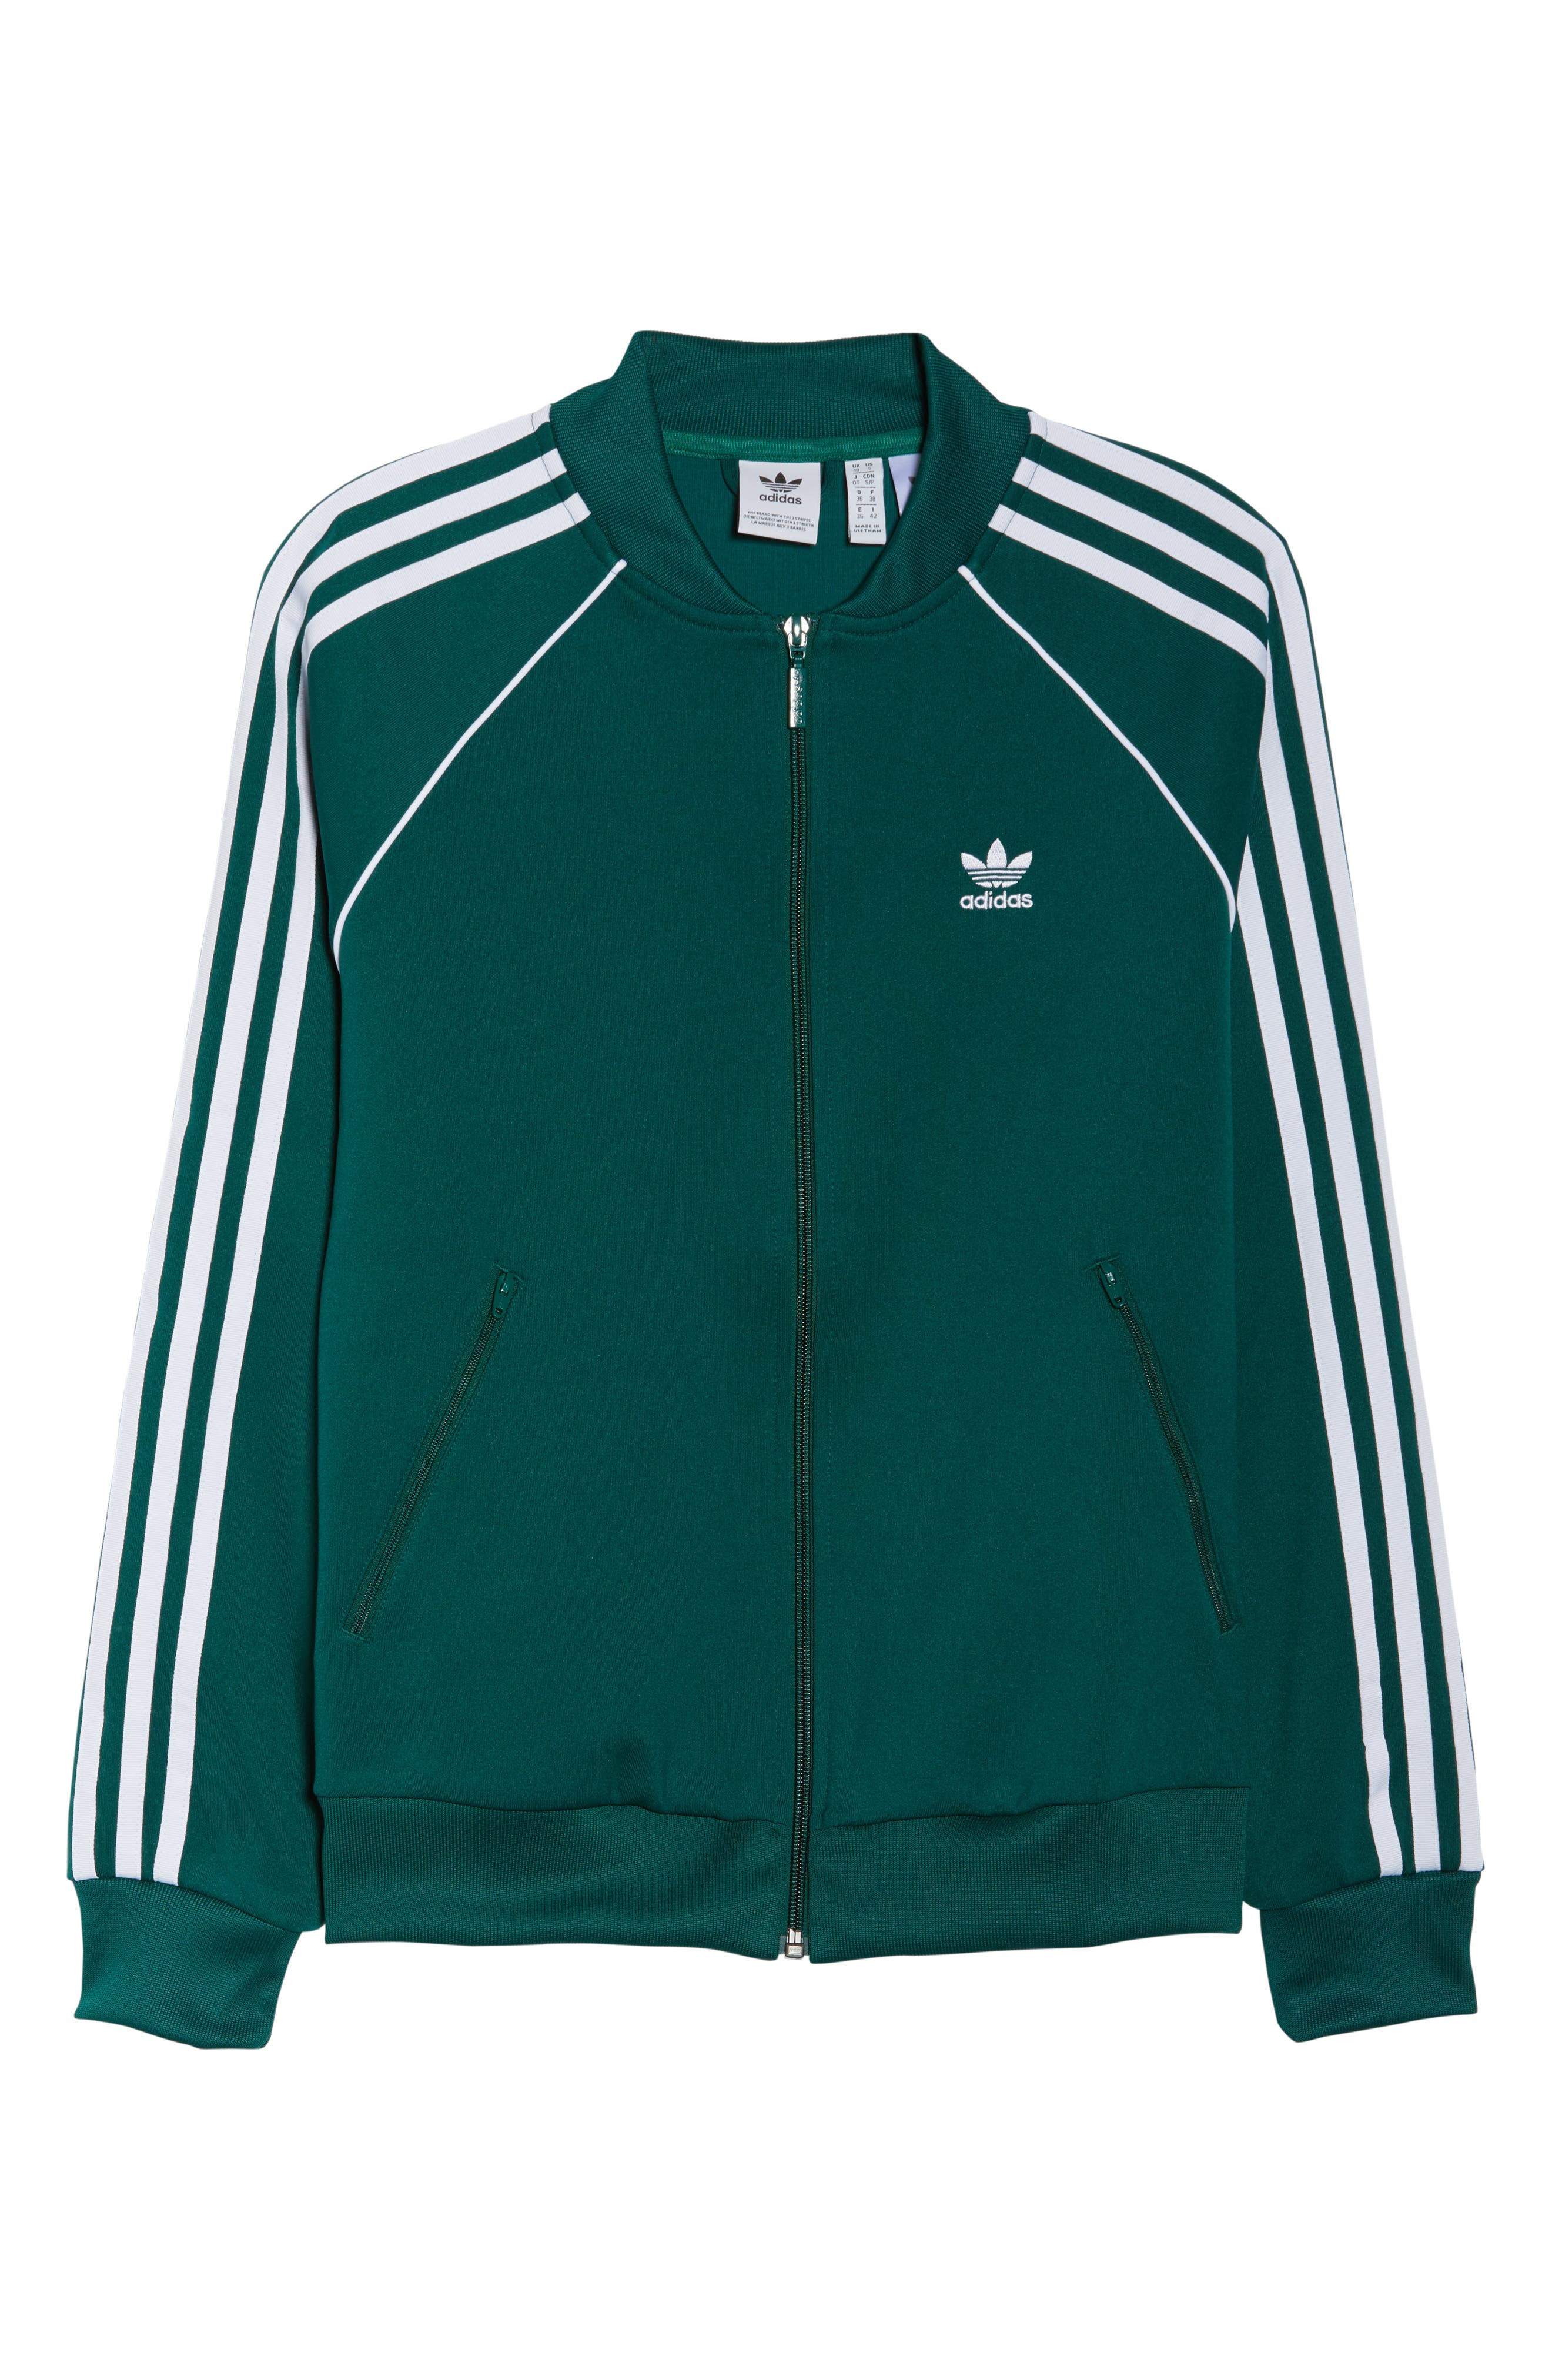 adidas SST Track Jacket,                             Alternate thumbnail 6, color,                             305